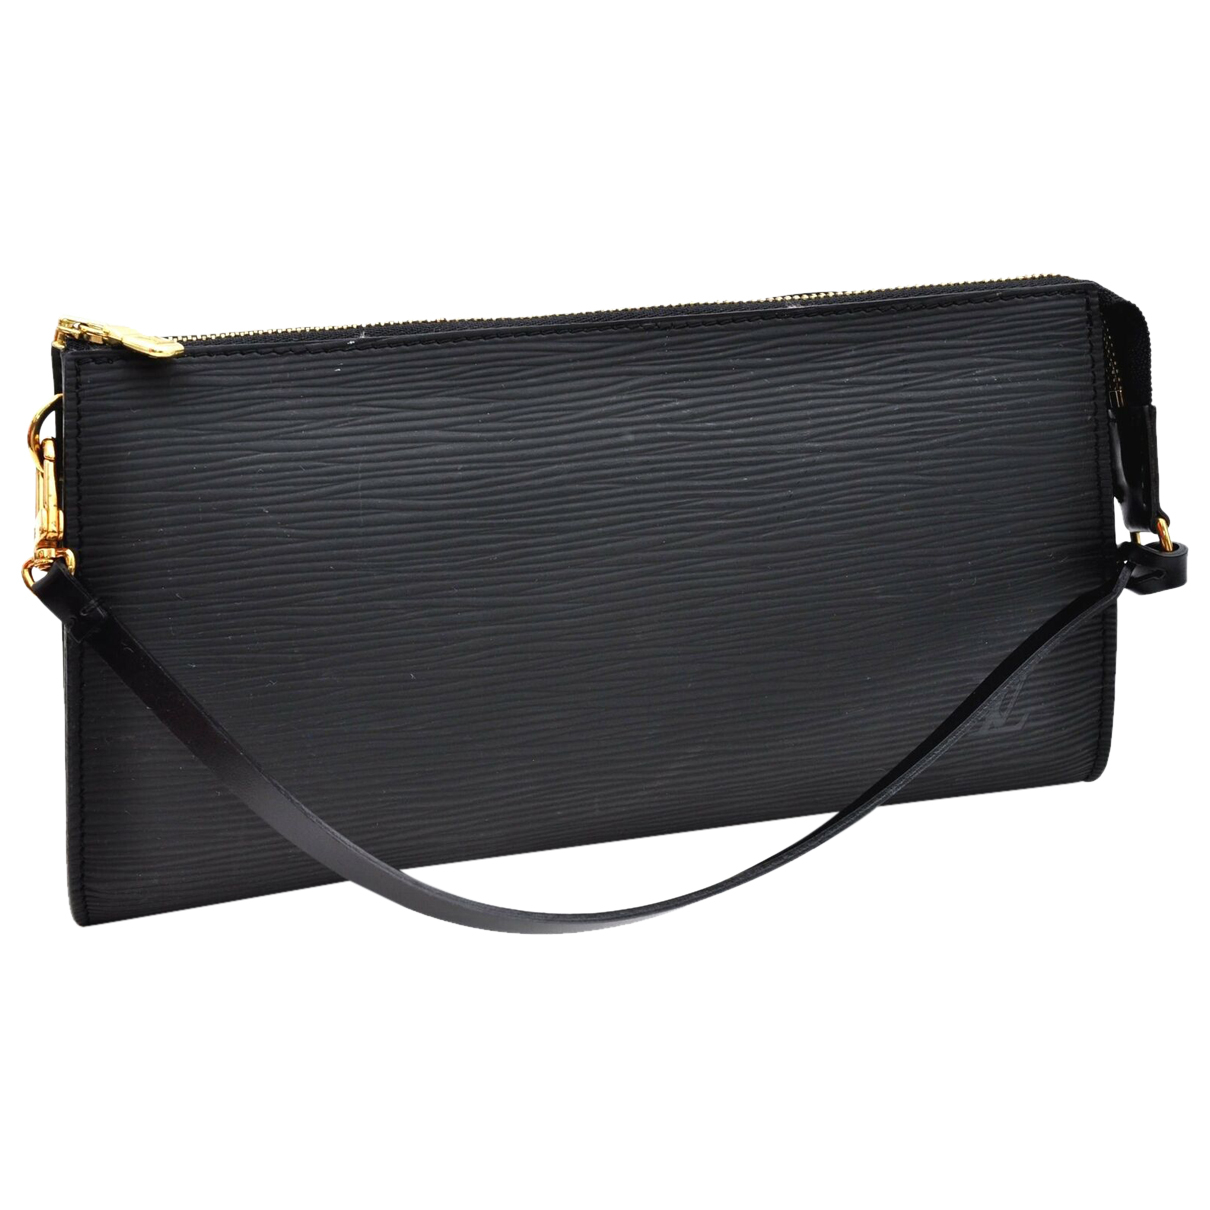 Louis Vuitton N Black Leather Clutch bag for Women N